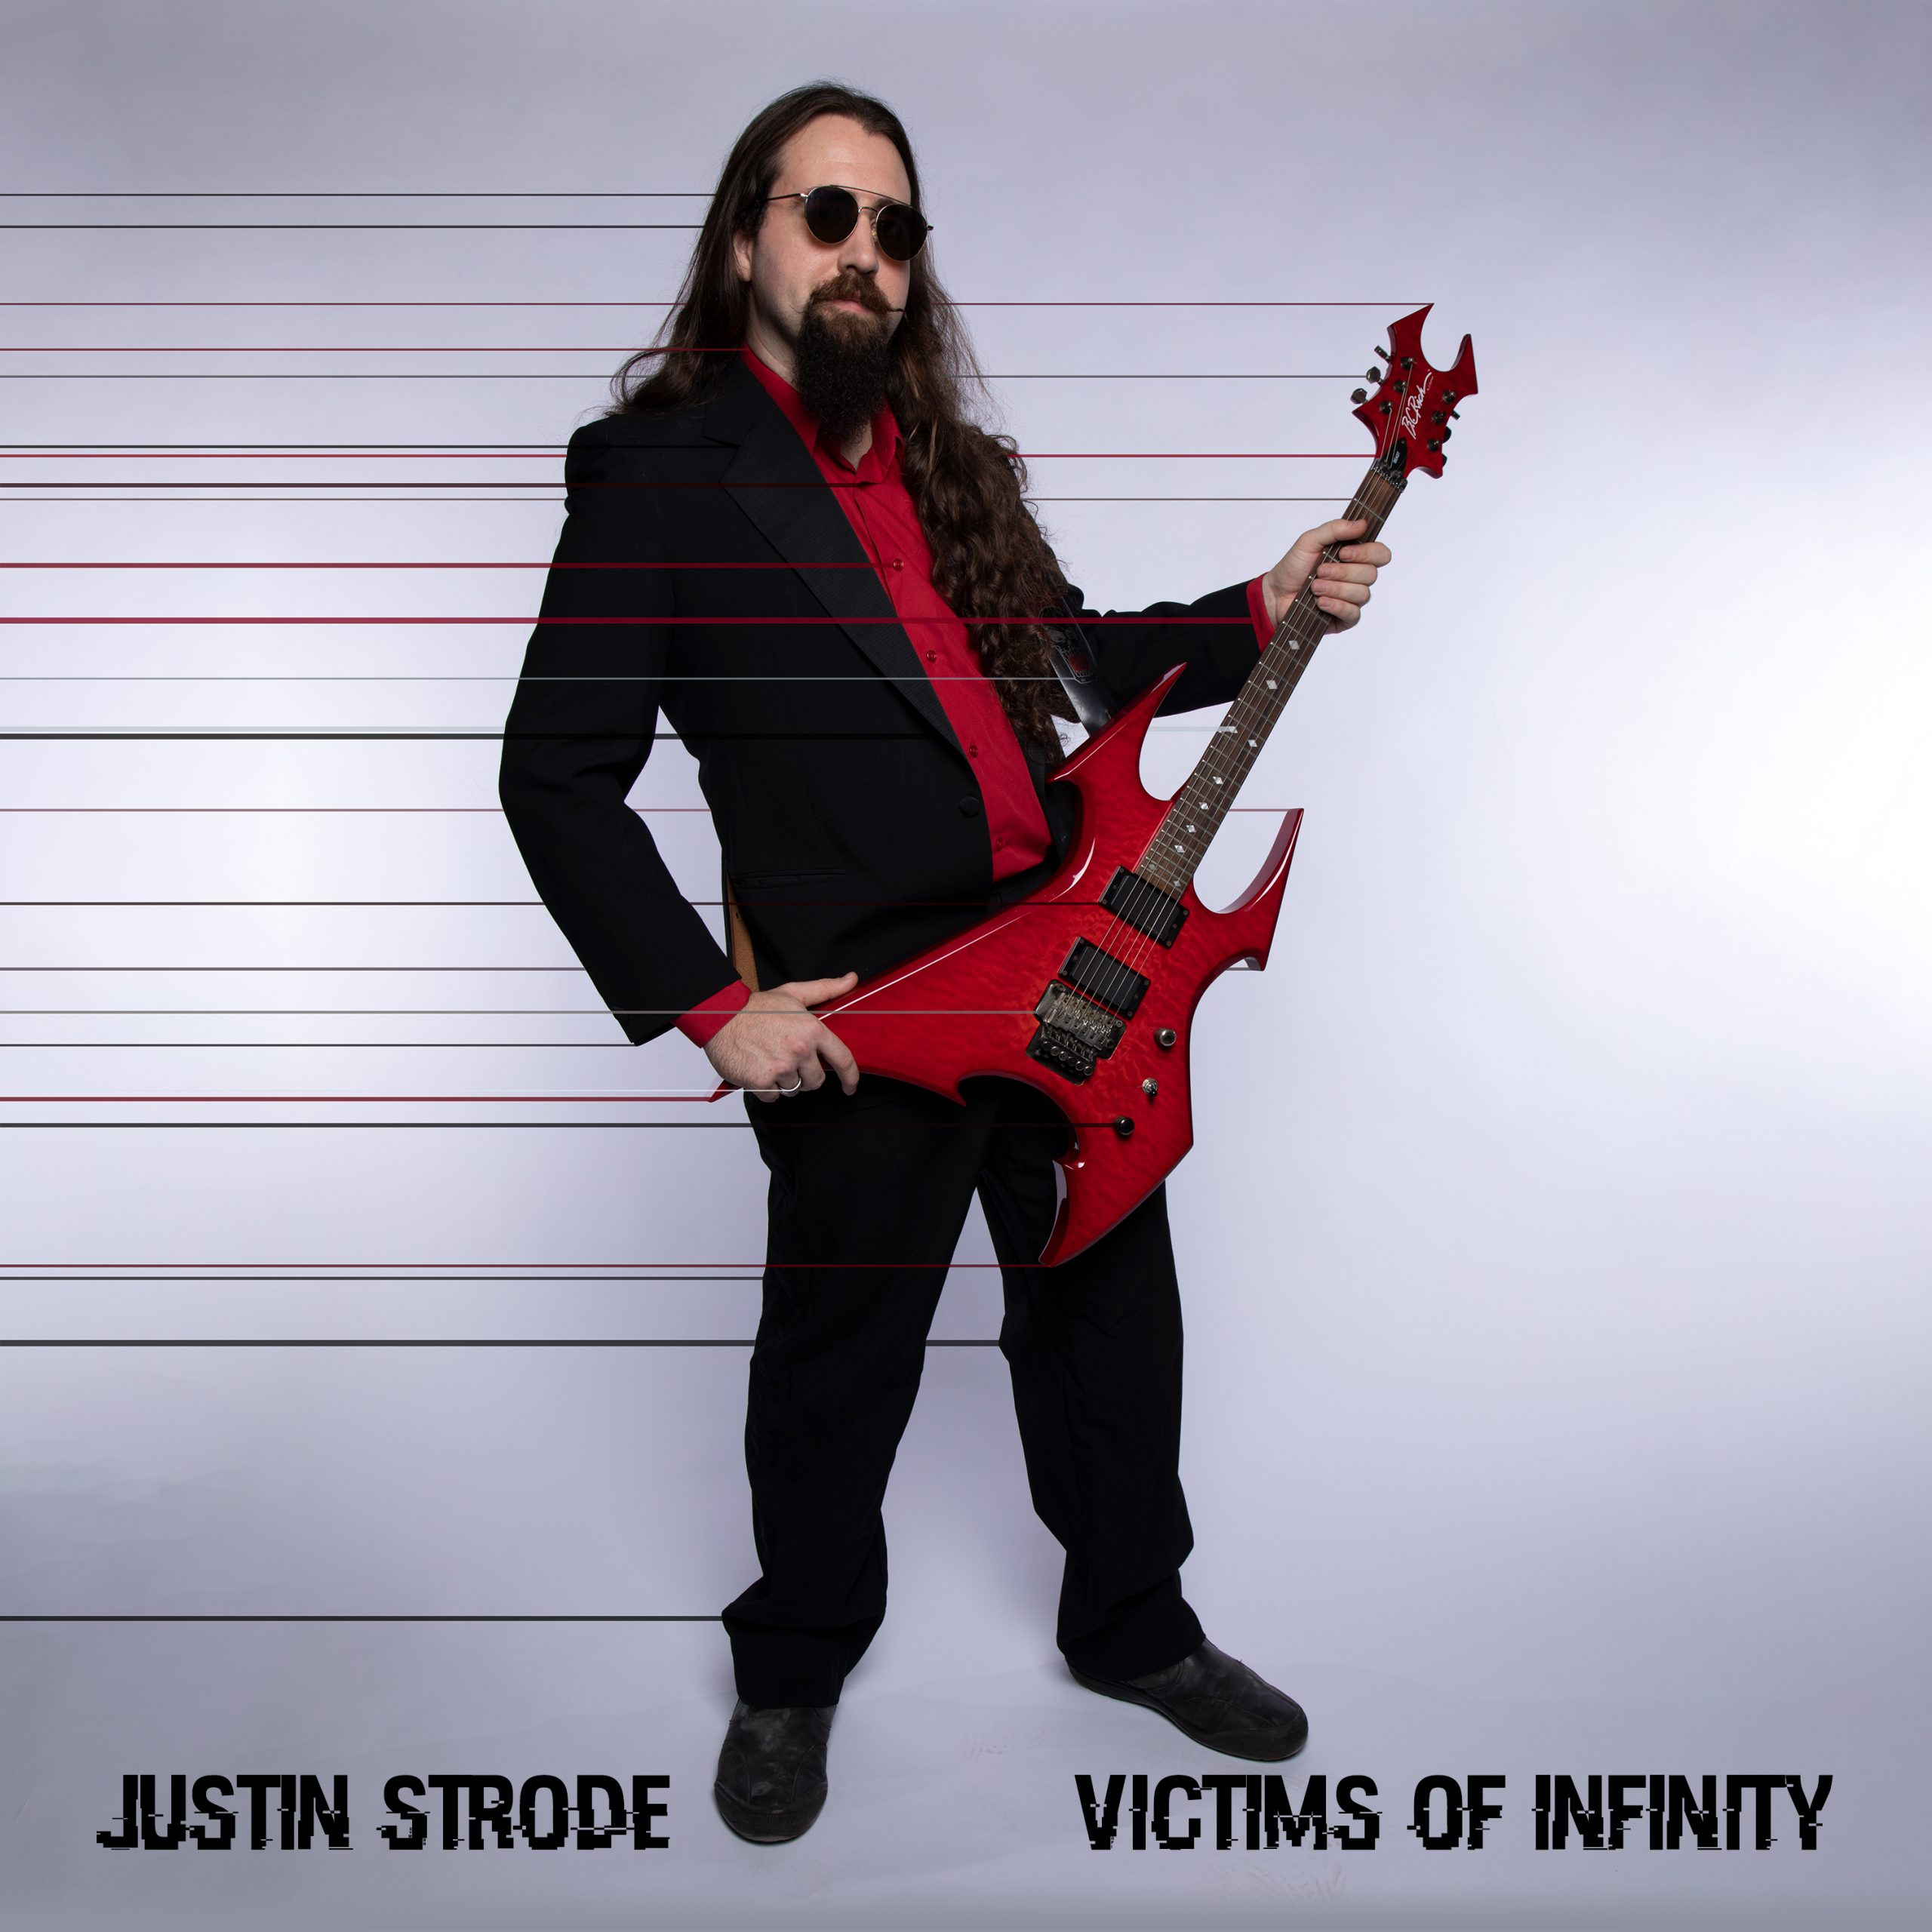 Victims of Infinity